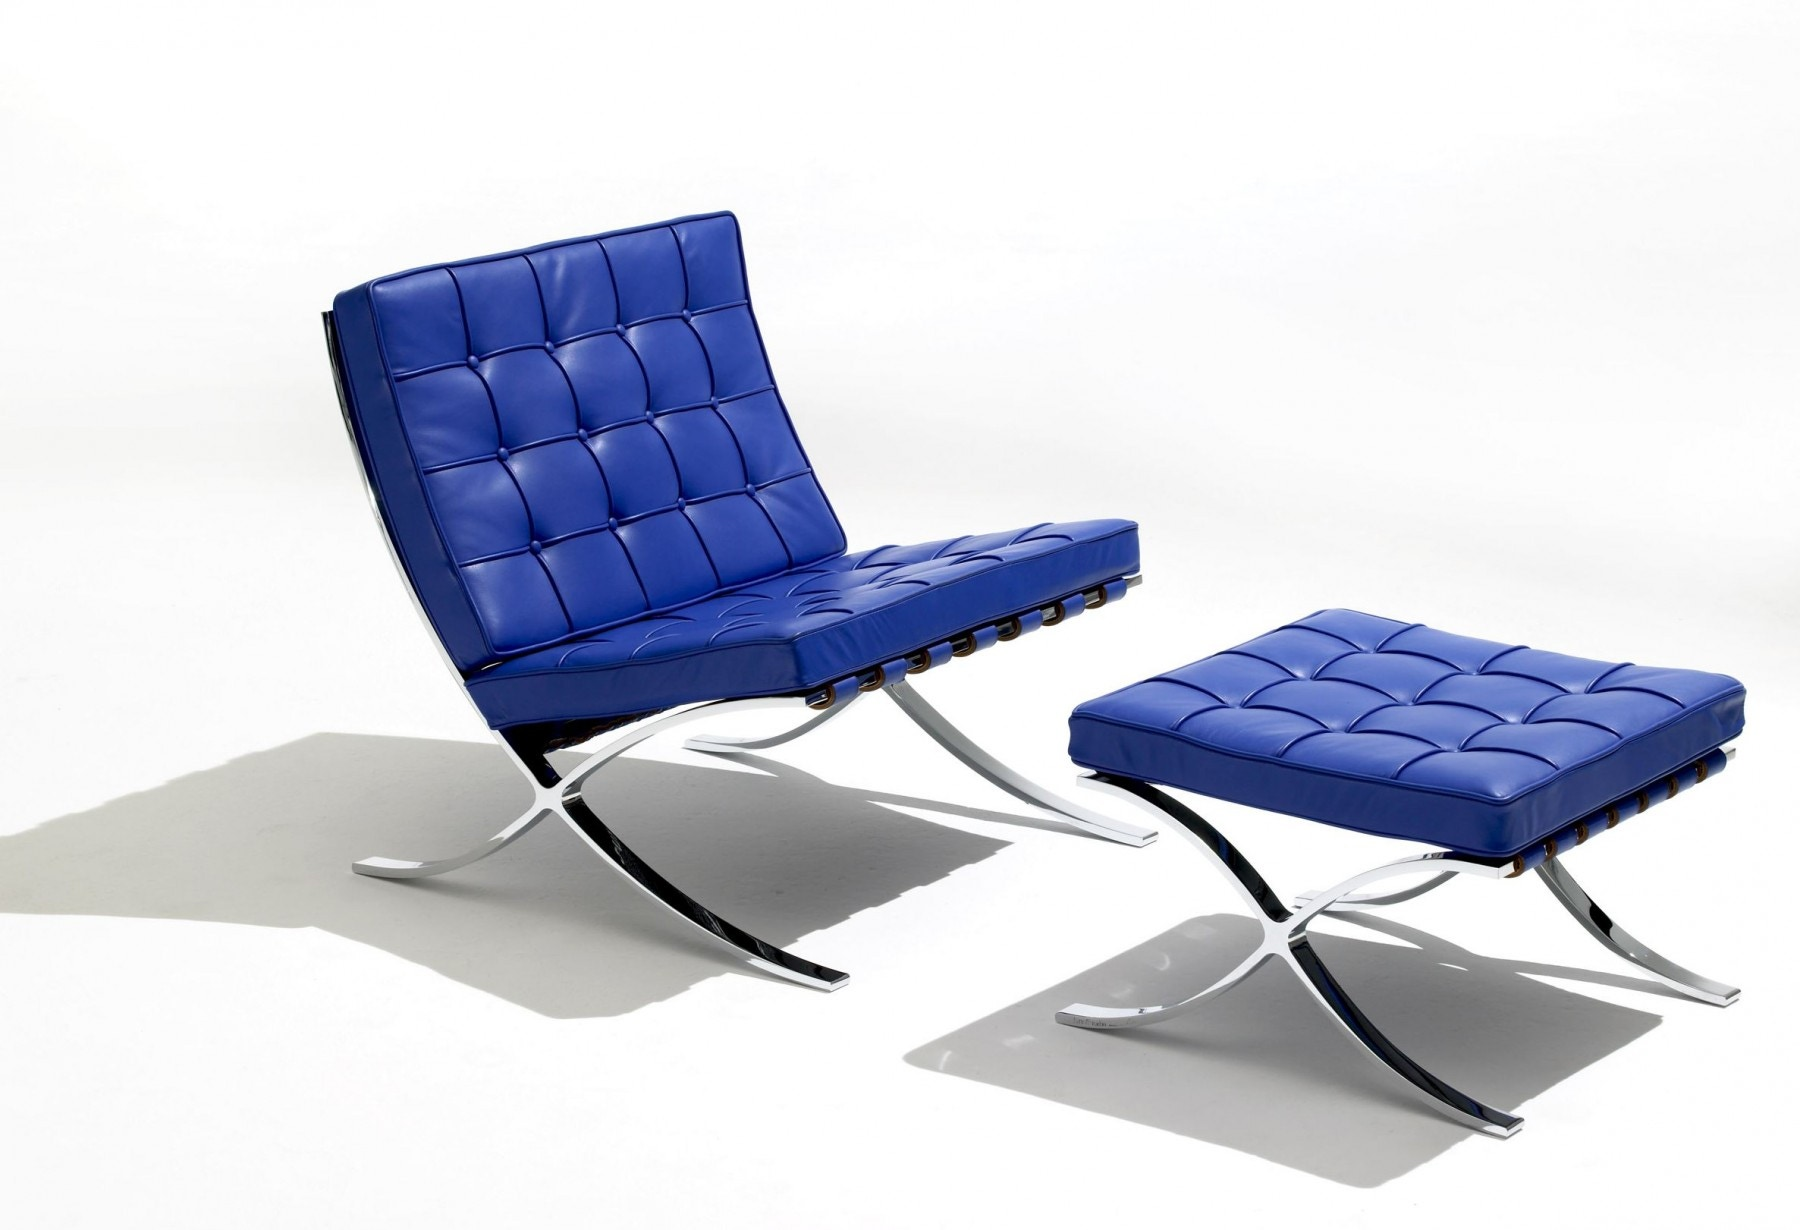 knoll ludwig mies van der rohe  barcelona lounge chair  gr shop  -